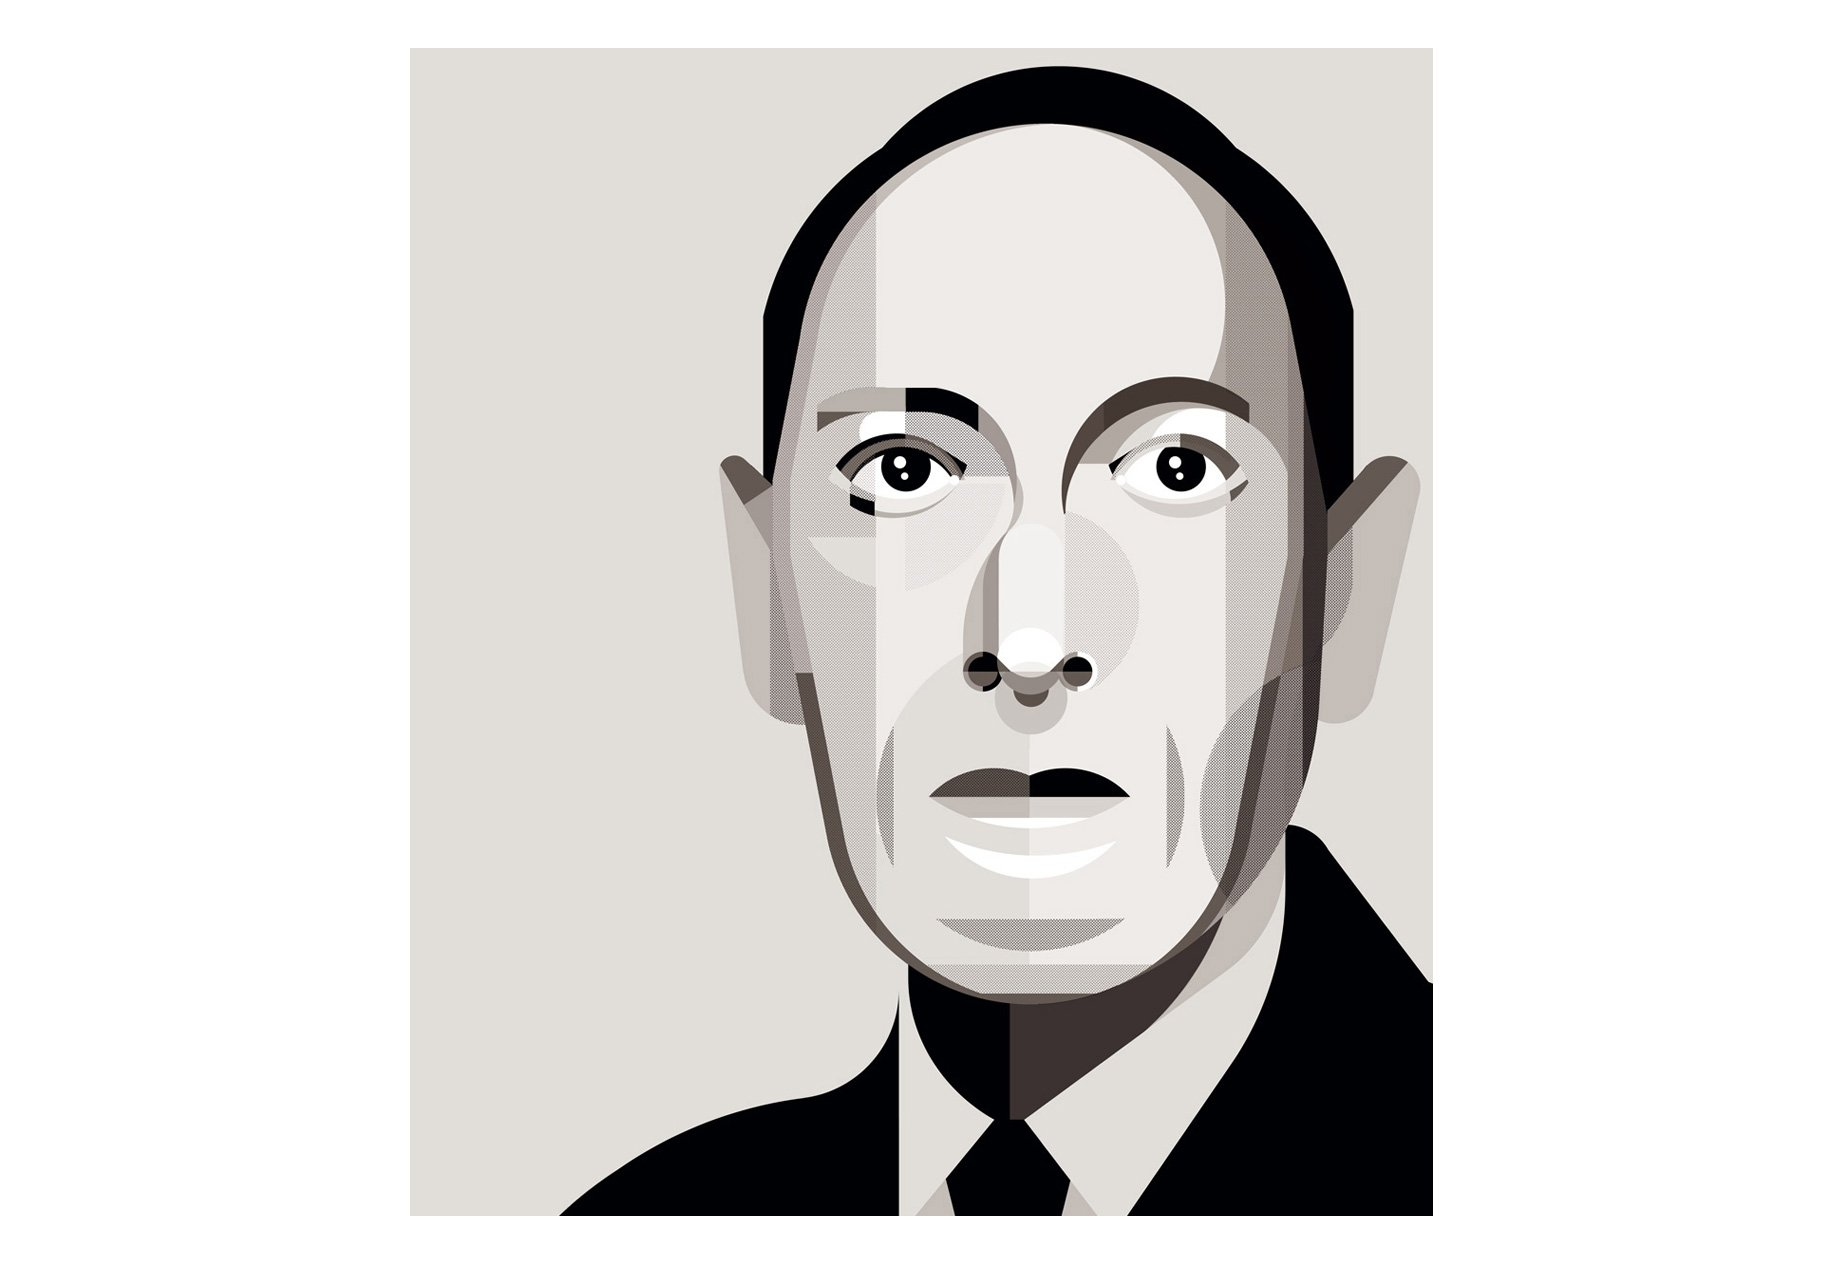 lovecraft-portrait-illustration-B